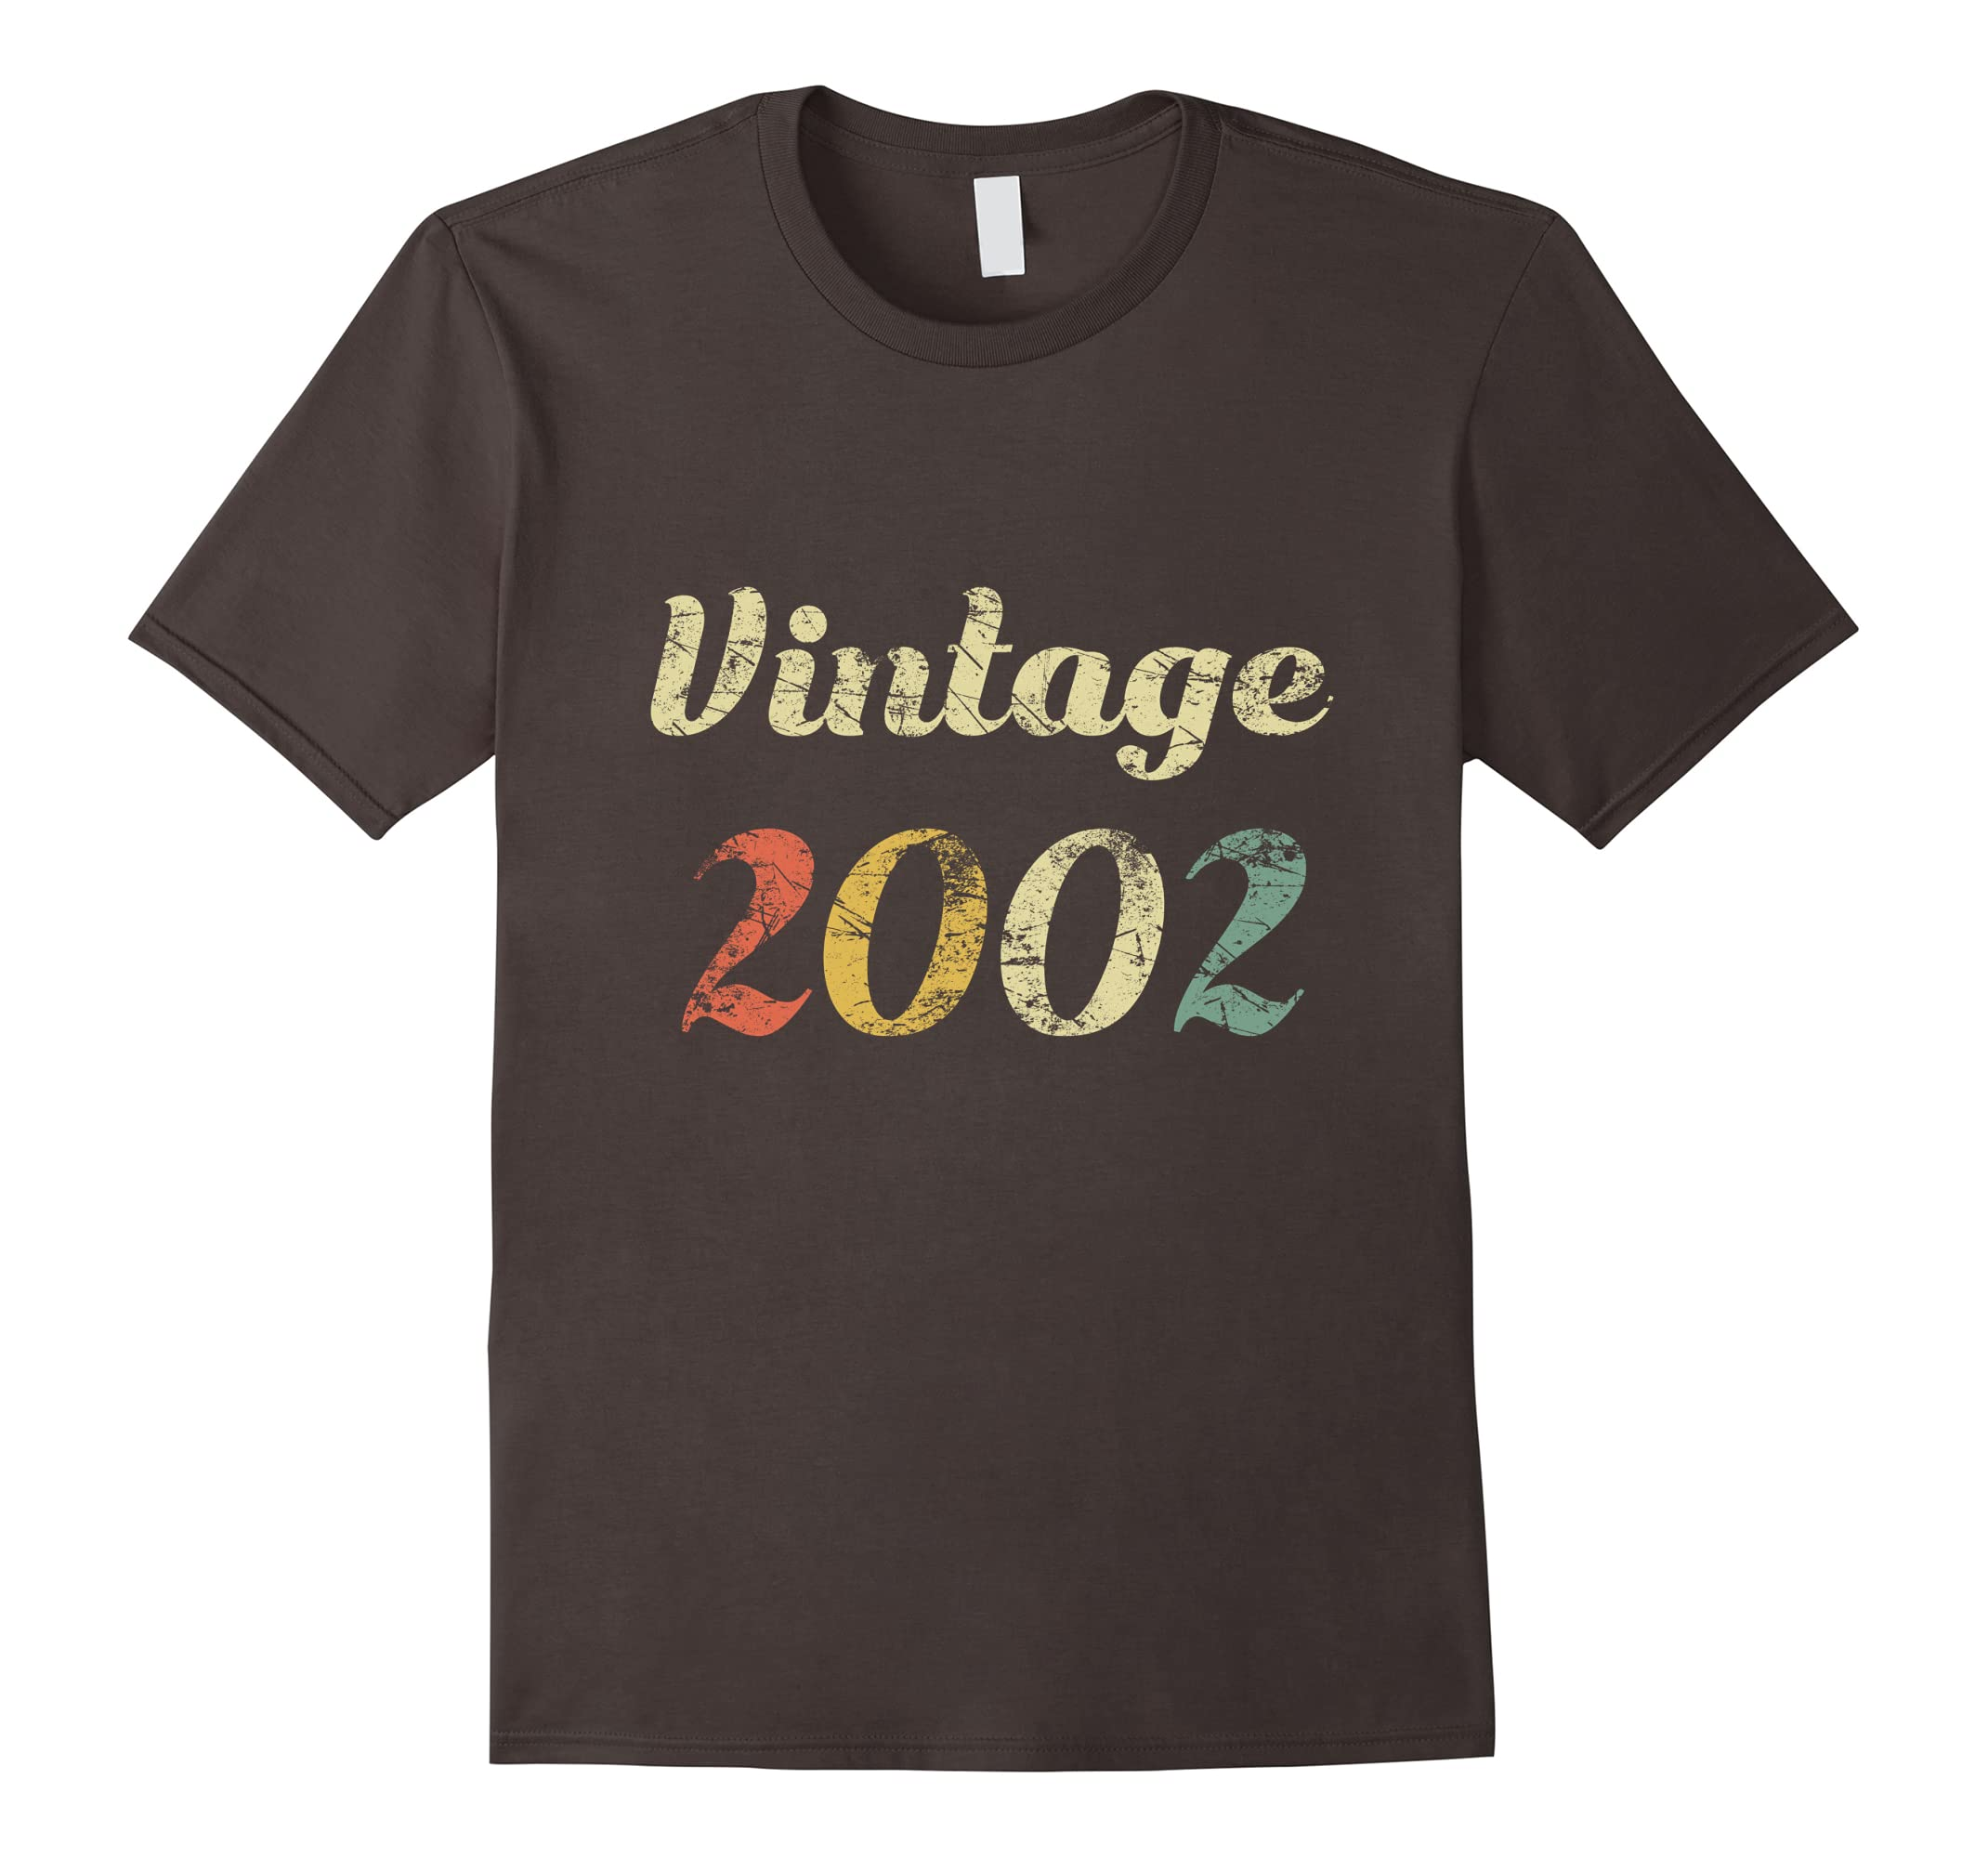 16th Vintage Birthday Gift Shirt Distressed Born In 2002-ah my shirt one gift